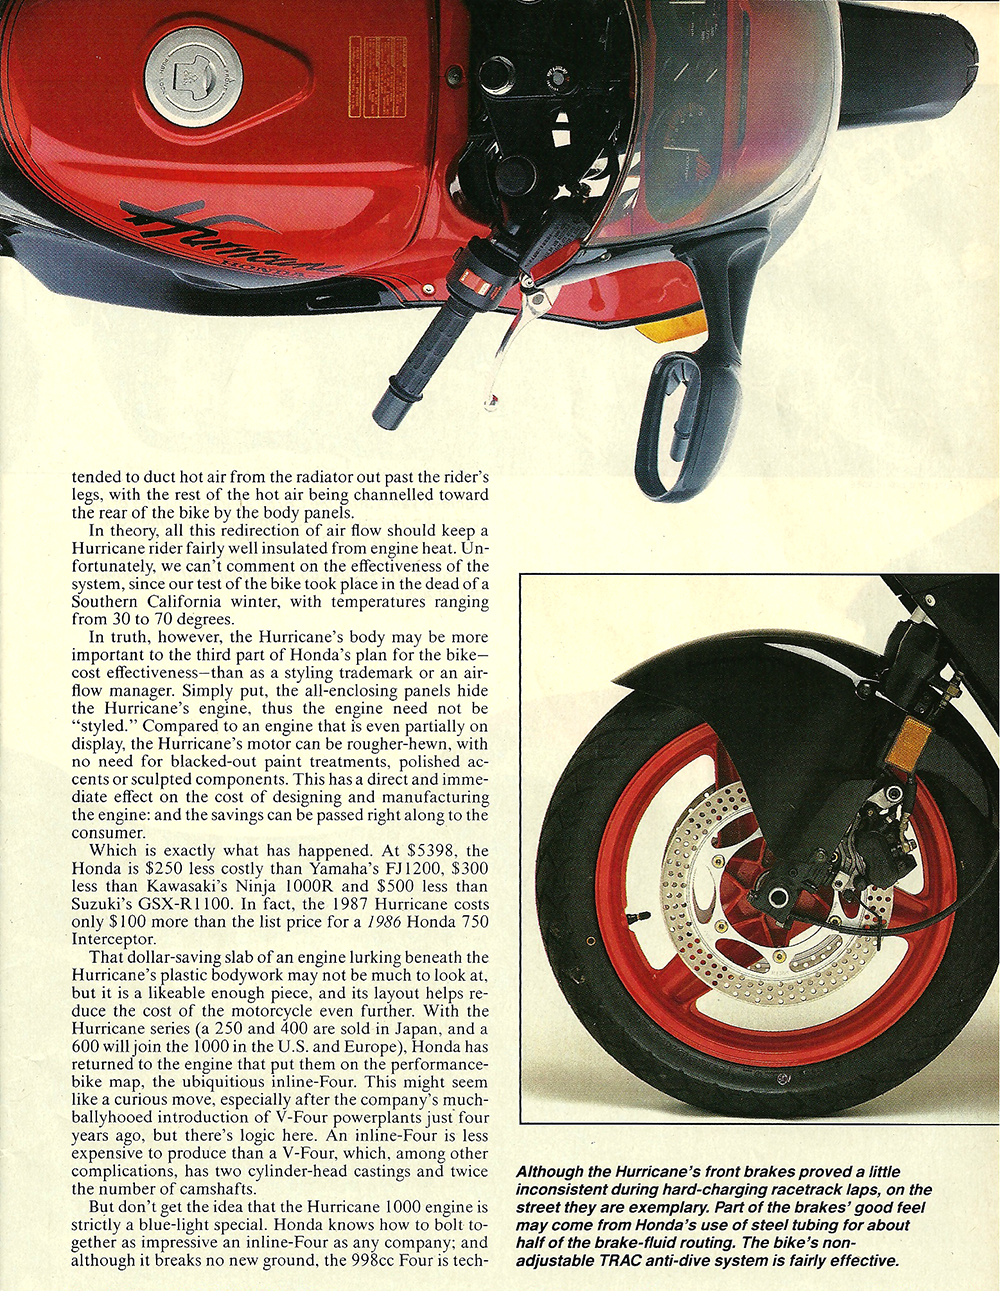 1987 Honda Hurricane 1000 road test 04.jpg